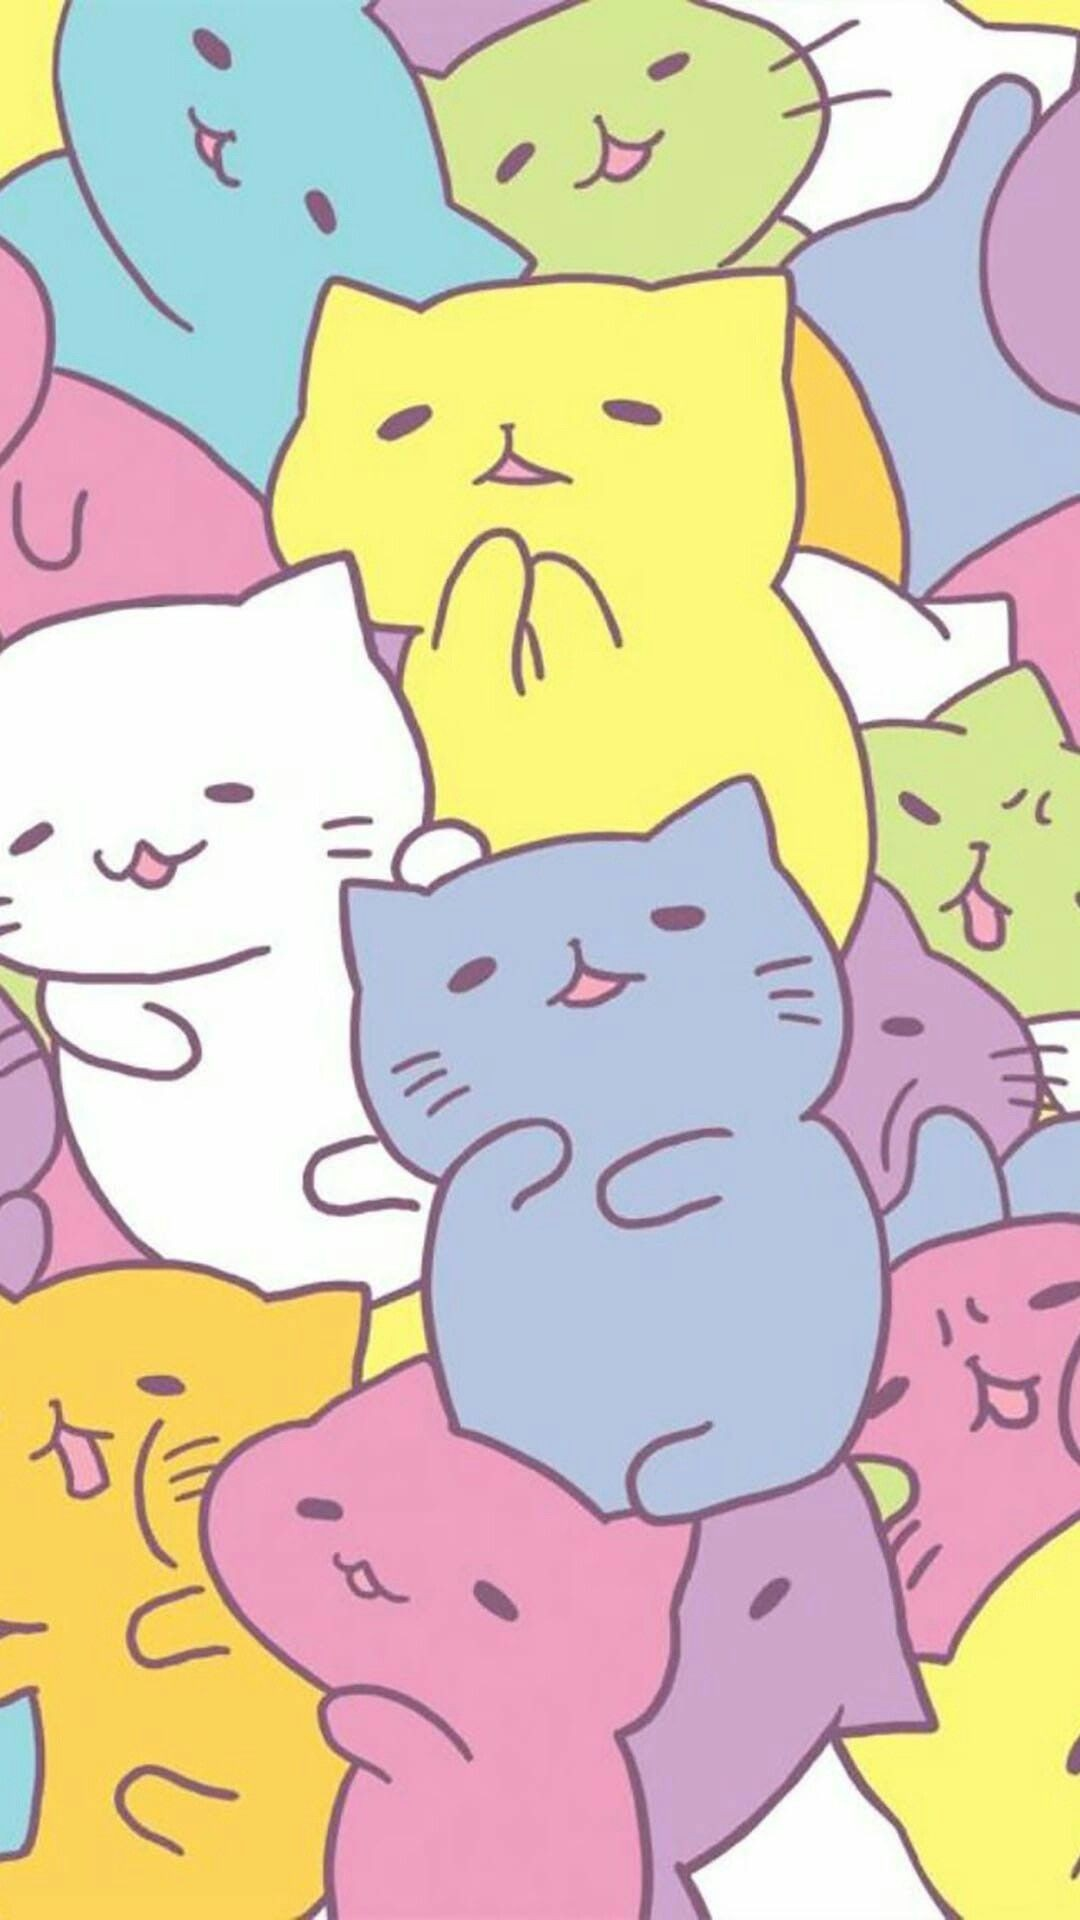 1080x1920 Pin By Esther On Cats Pinterest Kawaii Wallpaper And Cat 17 Cat Wallpaper